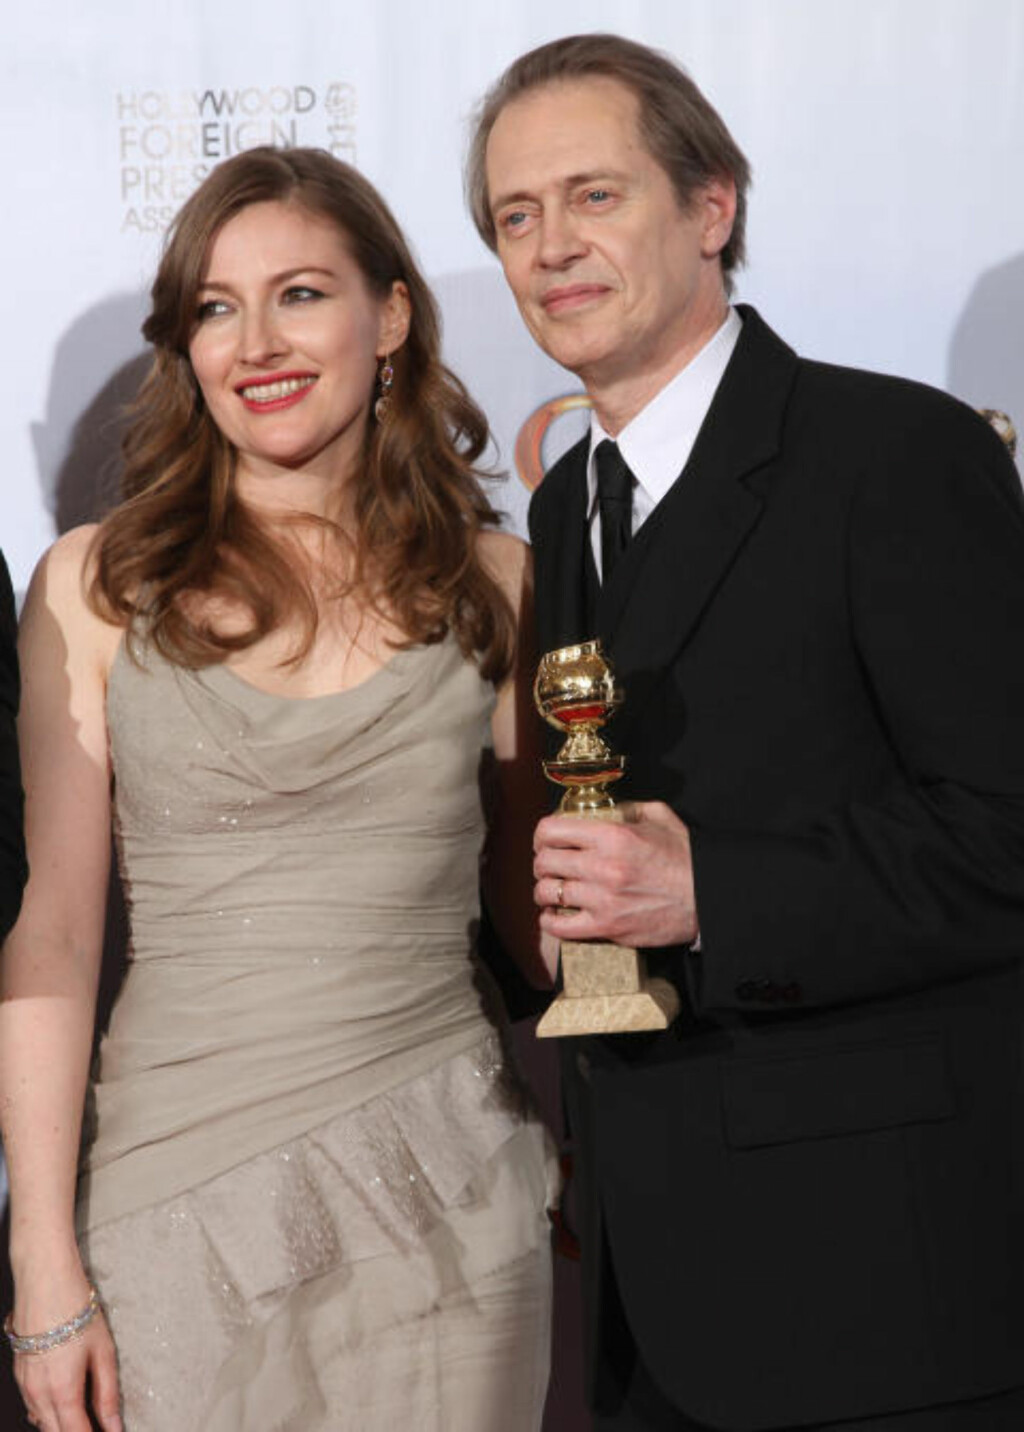 BESTE TV-DRAMA: Steve Buscemi ble hedret for rollen i TV-serien «Boardwalk Empire», der også Kelly Macdonald har en rolle. Foto: SCANPIX/AFP PHOTO  / Valerie Macon